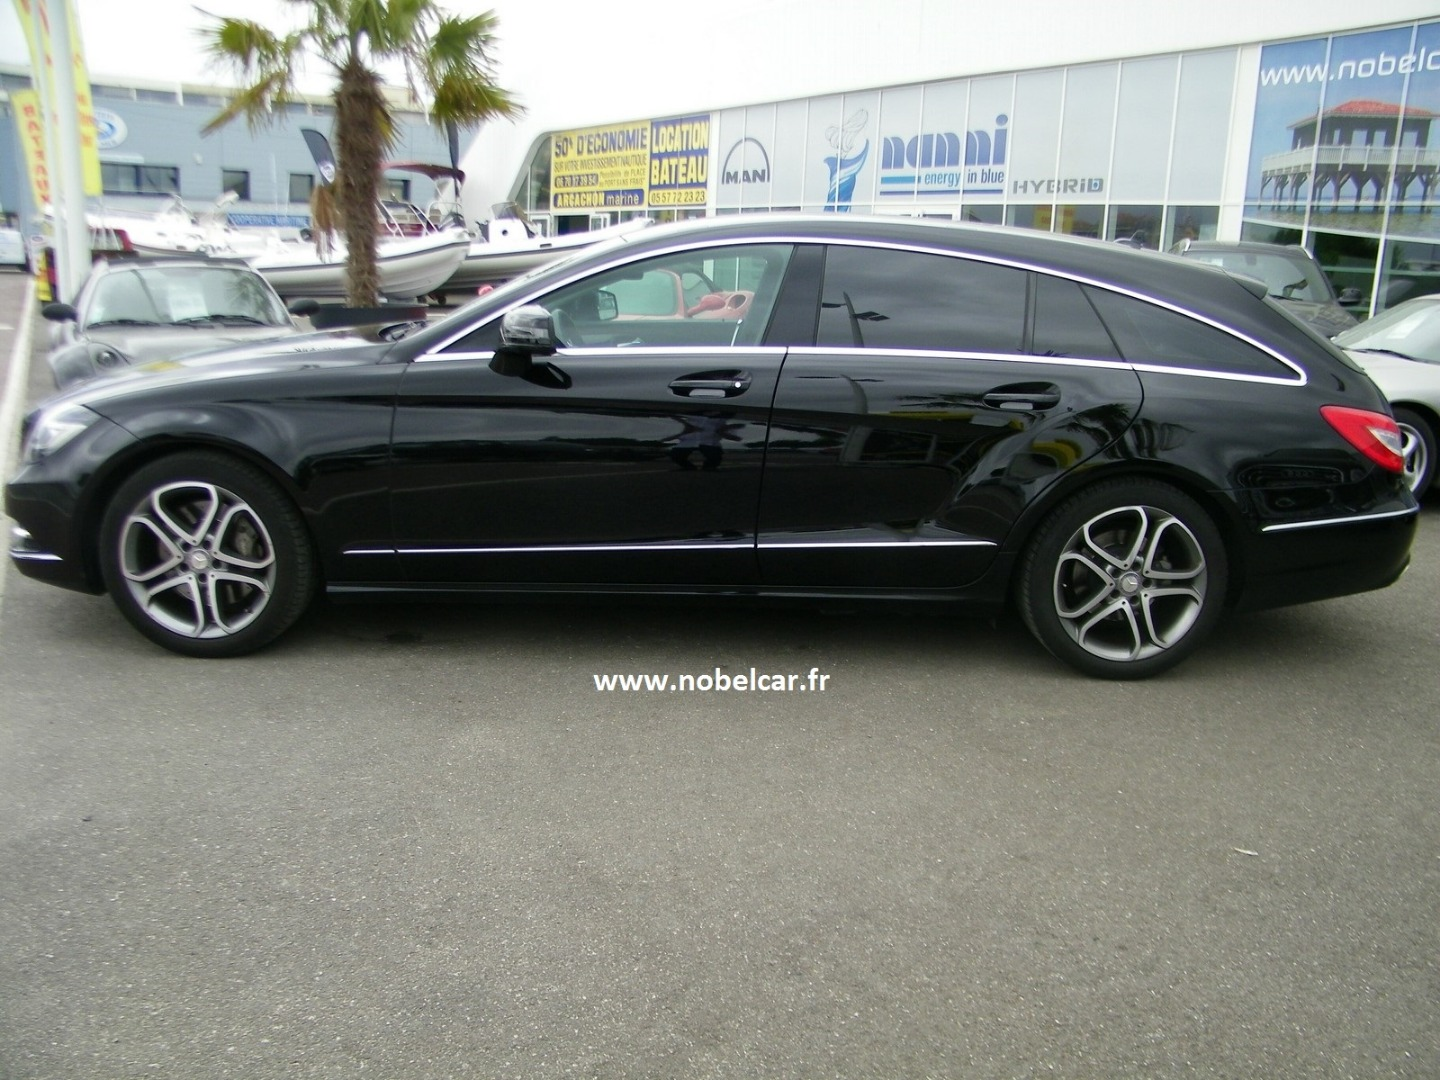 Mercedes Classe CLS SHOOTING BRAKE 350 CDI BA7 7G-Tronic Plus D'occasion Gironde 33